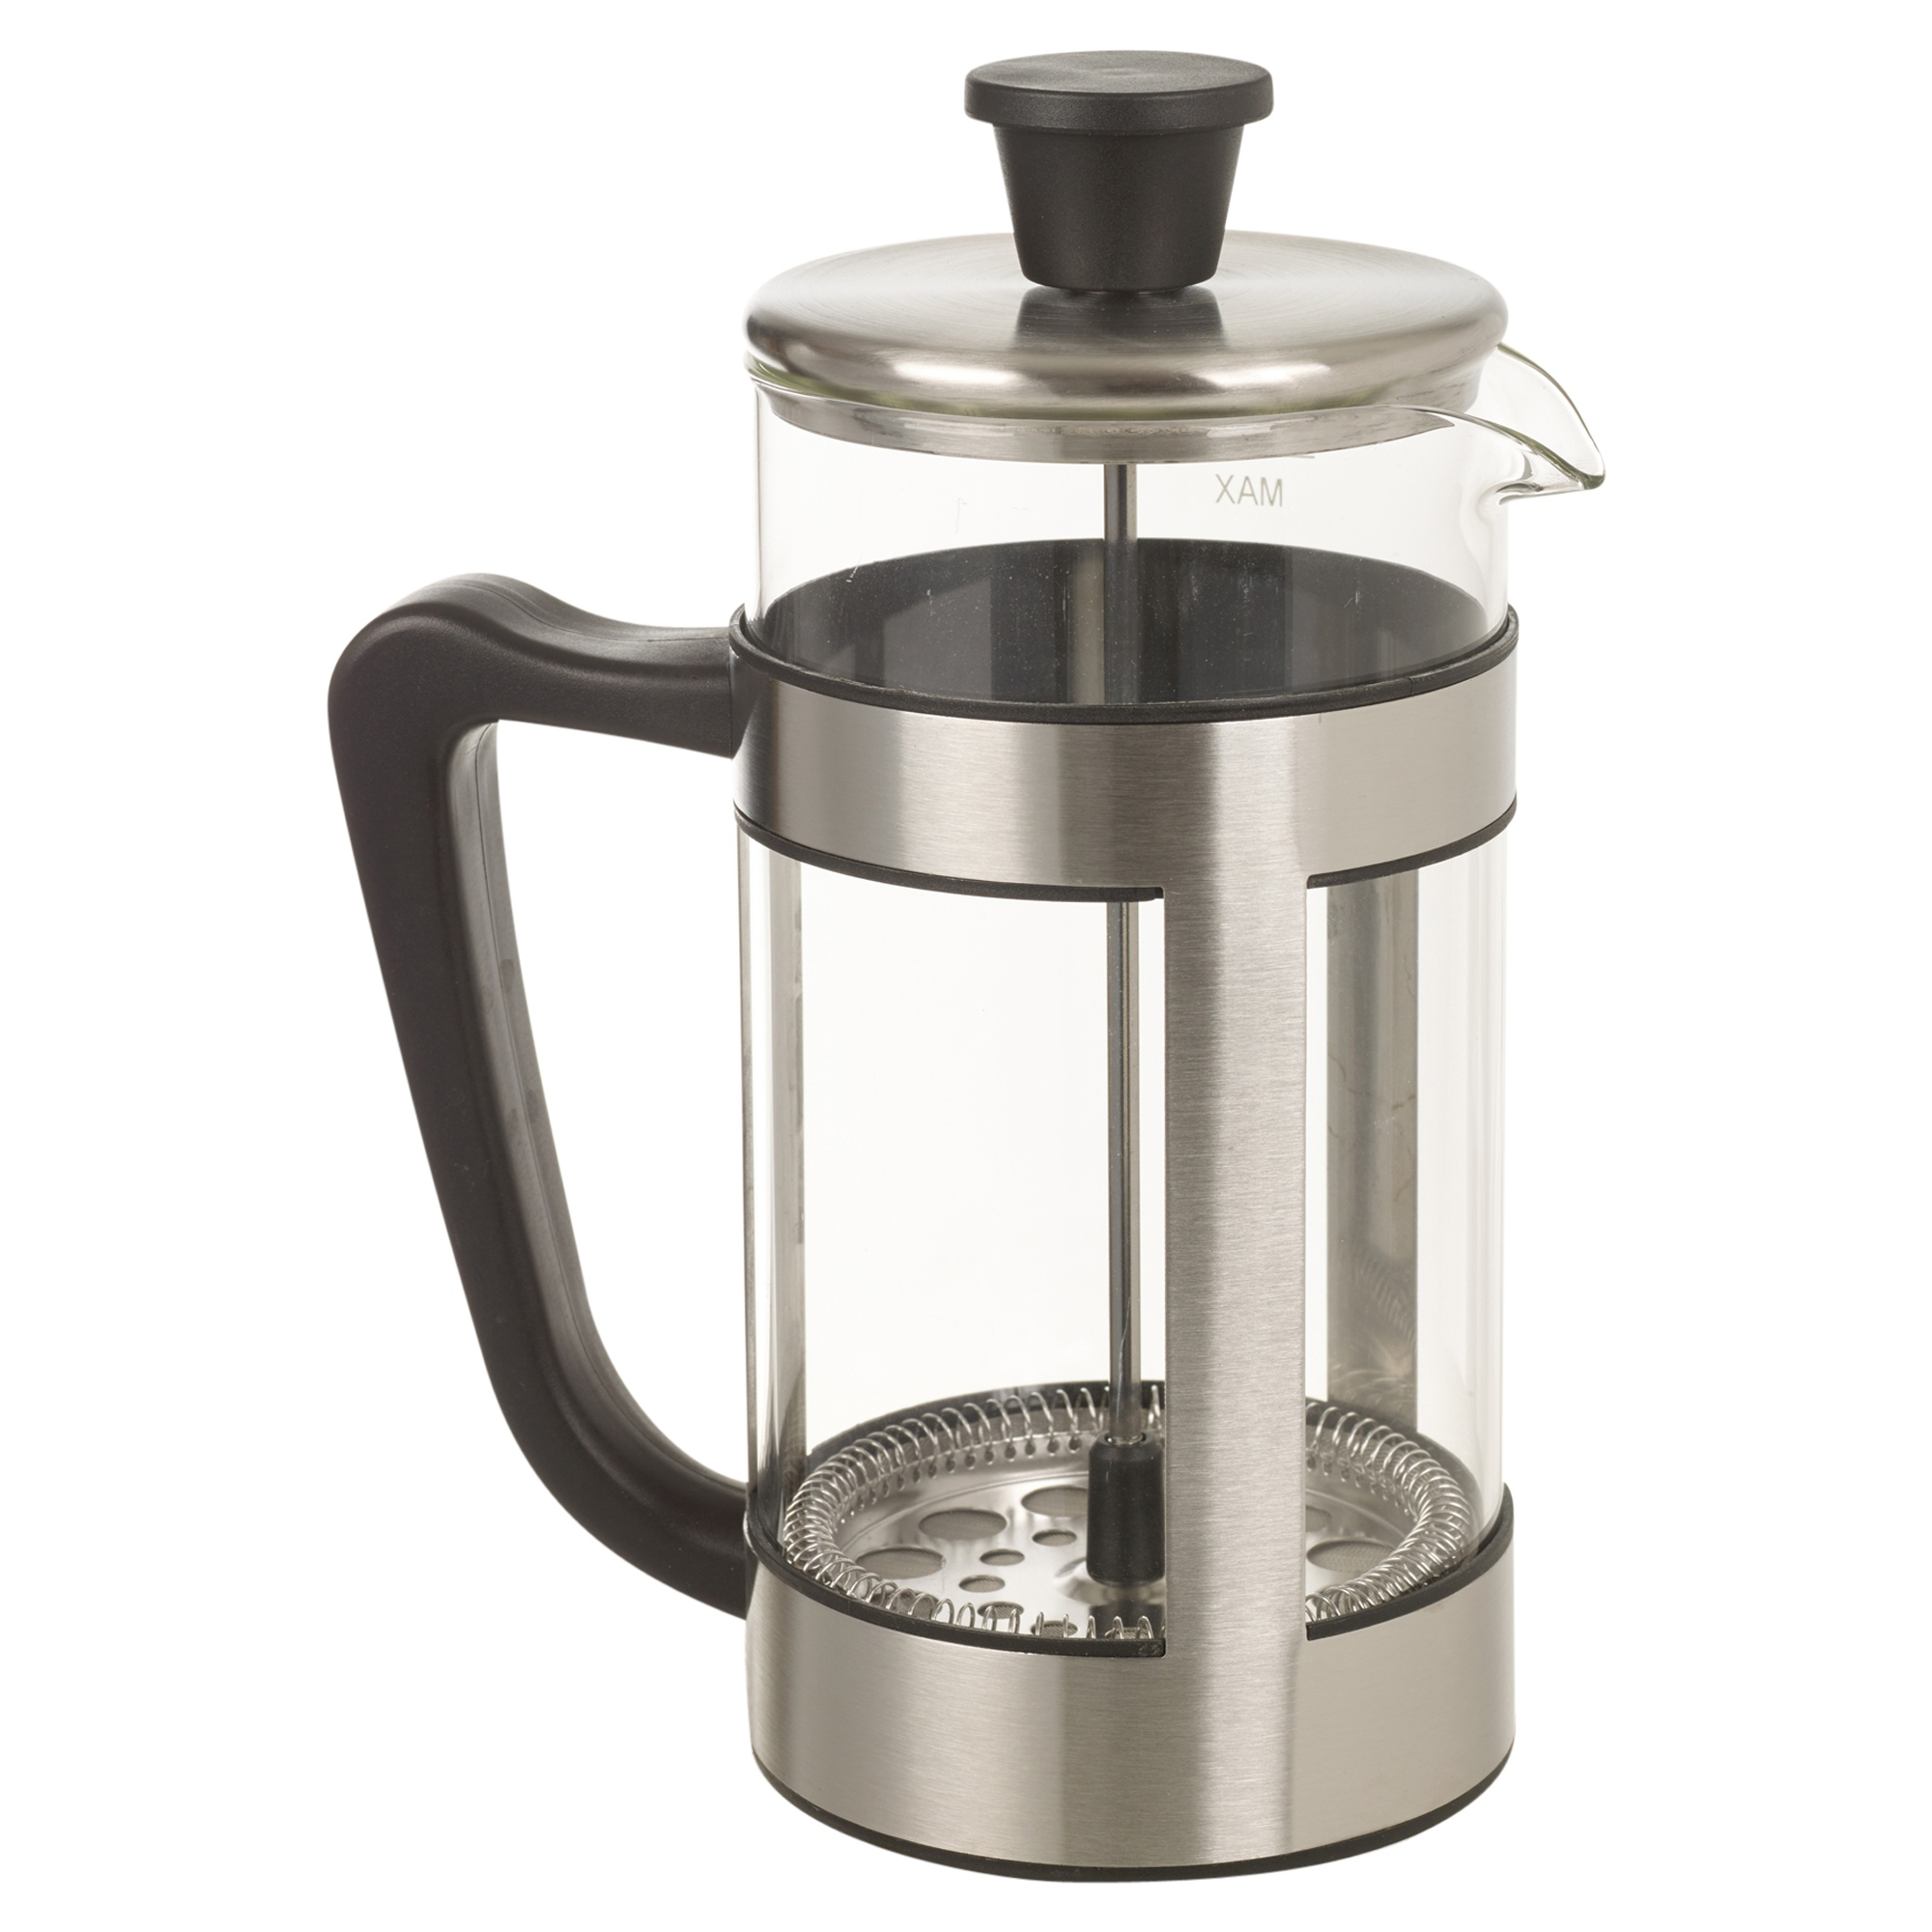 alpina 8 cup 1ltr cafetiere coffee plunger french press filter maker glass cafe ebay. Black Bedroom Furniture Sets. Home Design Ideas